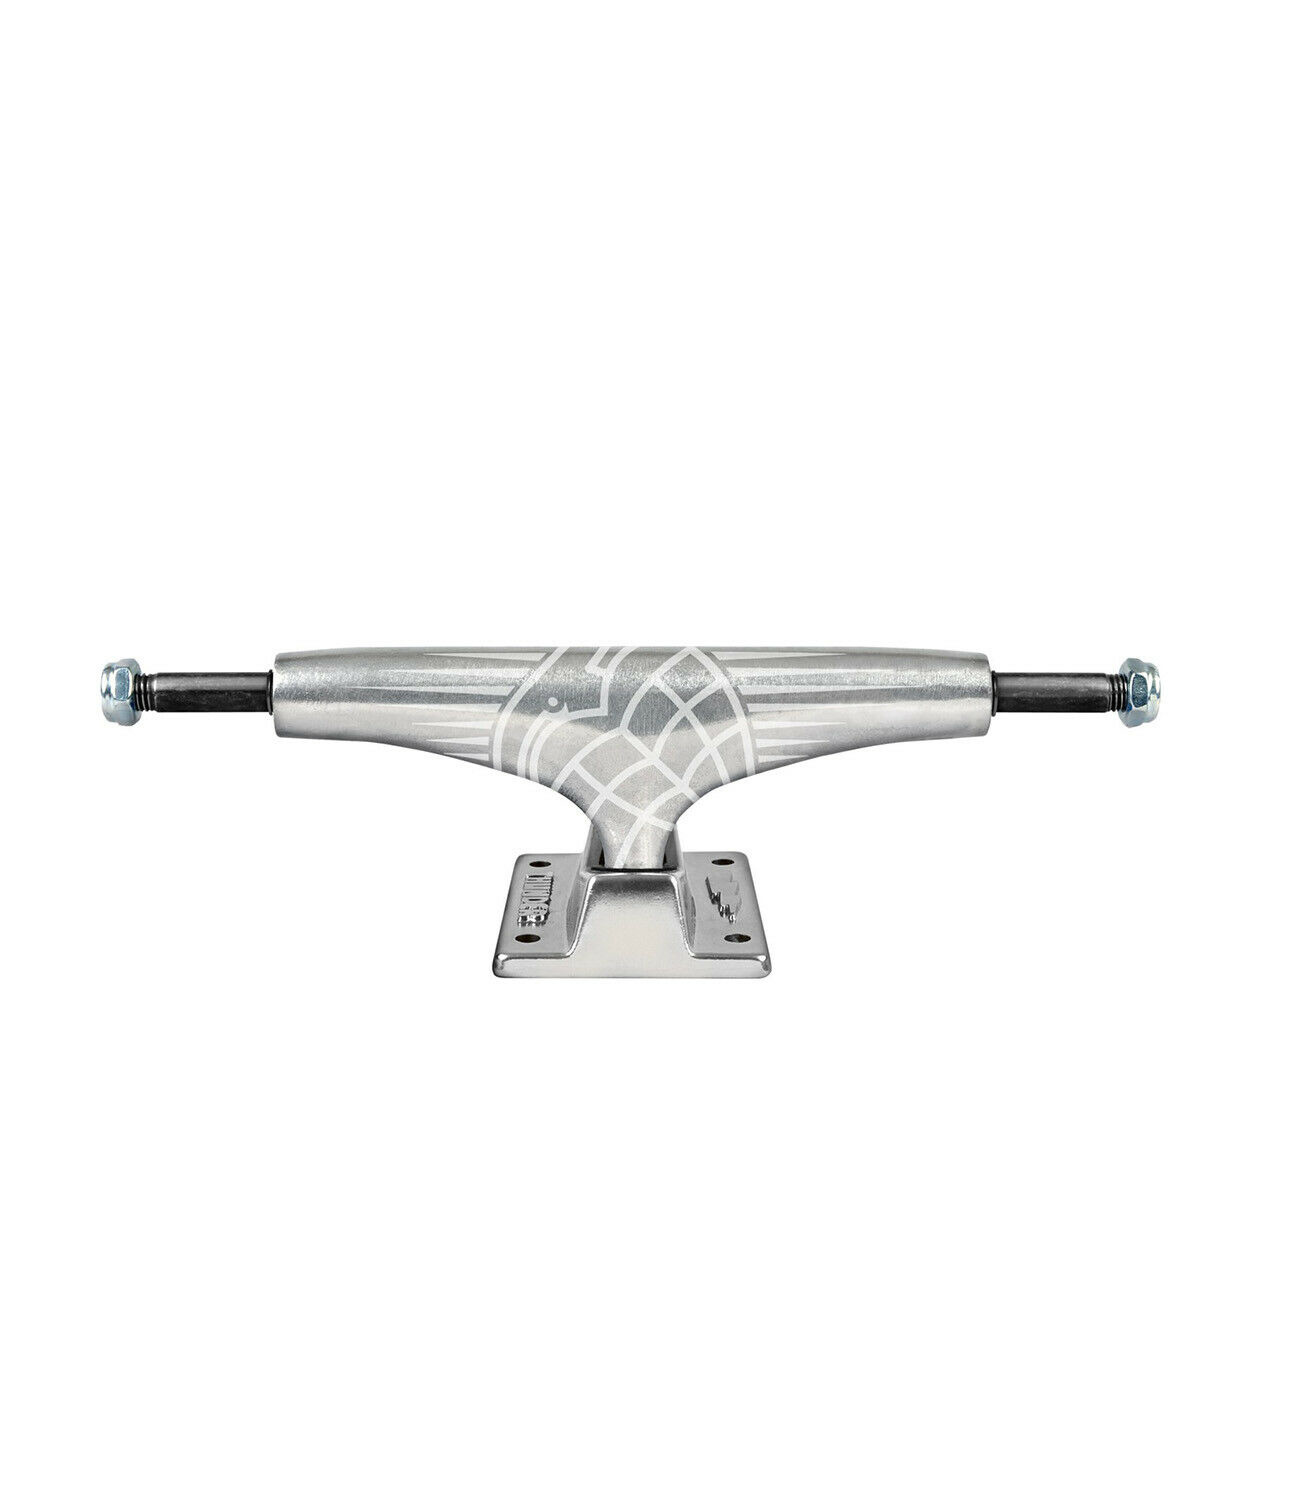 Eastern Skate Supply Thunder Light 145 Trucks, Polished Silver